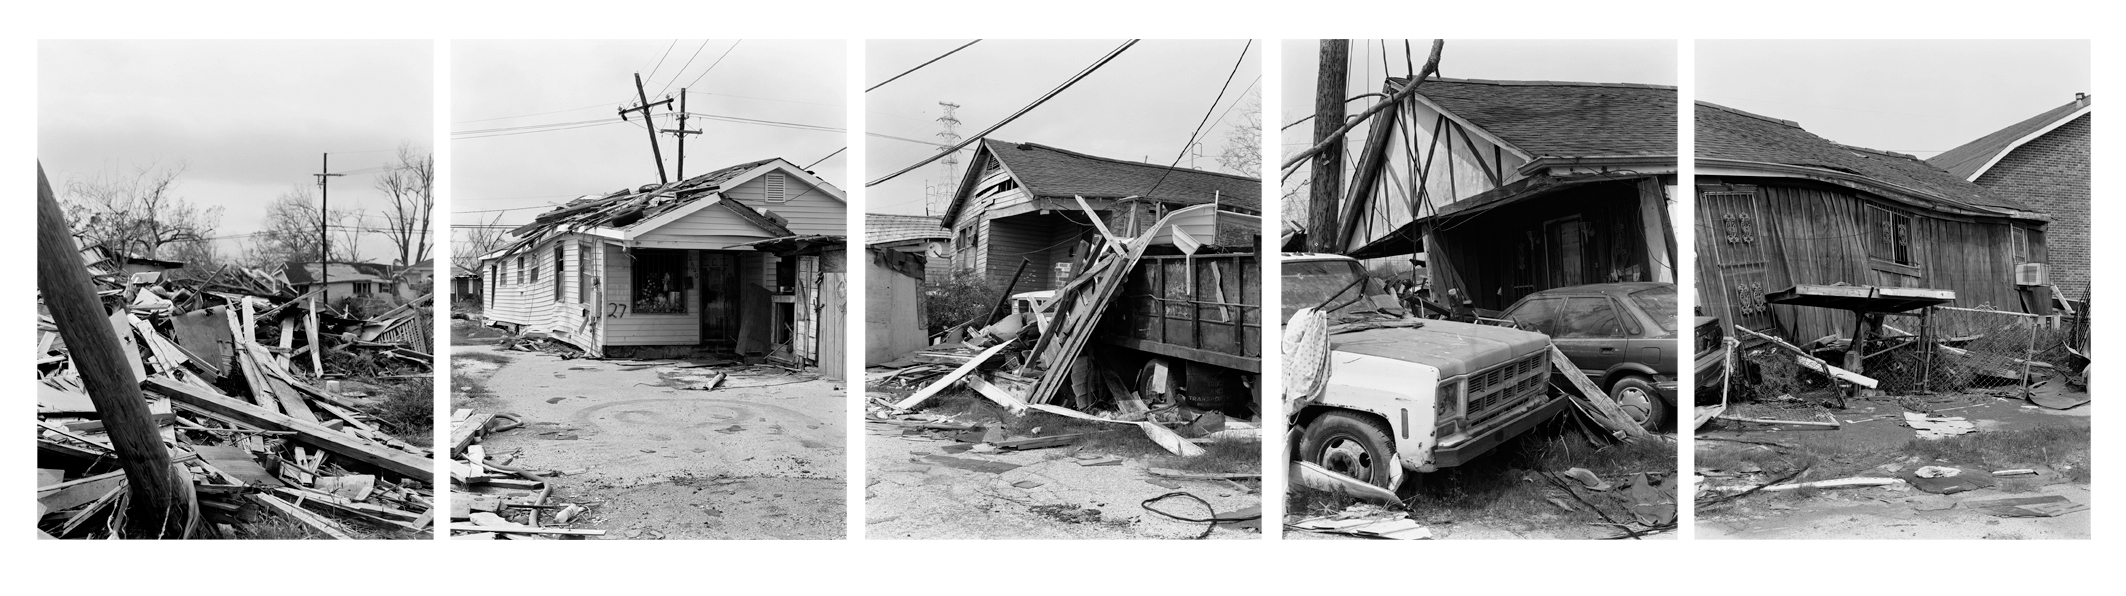 New Orleans Law Street, Lower 9th Ward, New Orleans, 2006